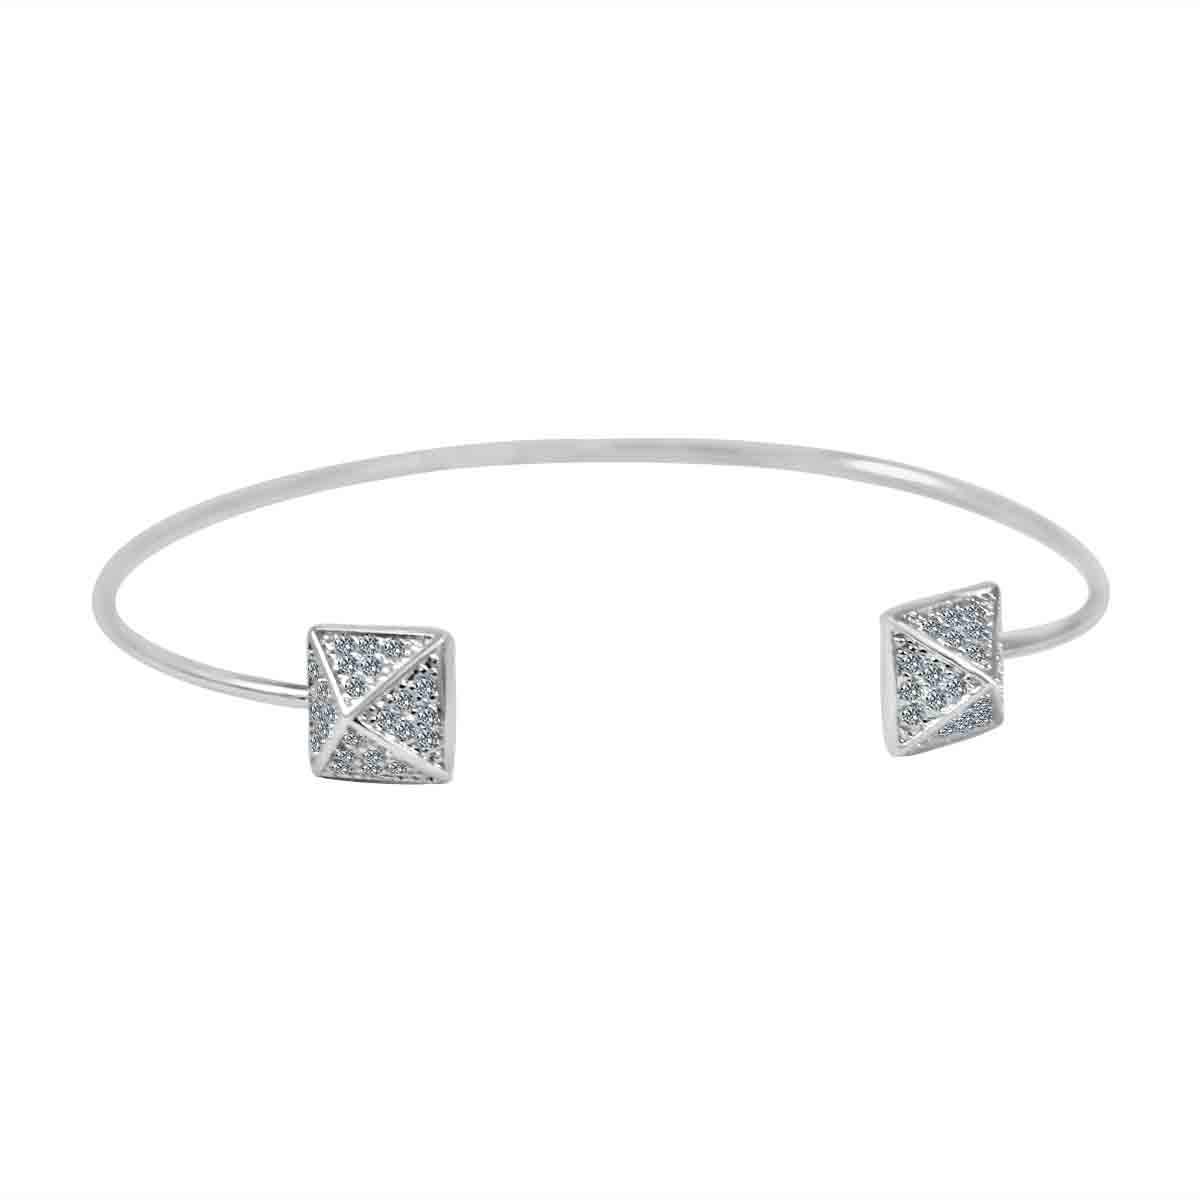 Fine Open end Pave pyramid Bangle set w/Zirconite Cubic Zirconia 705b1208